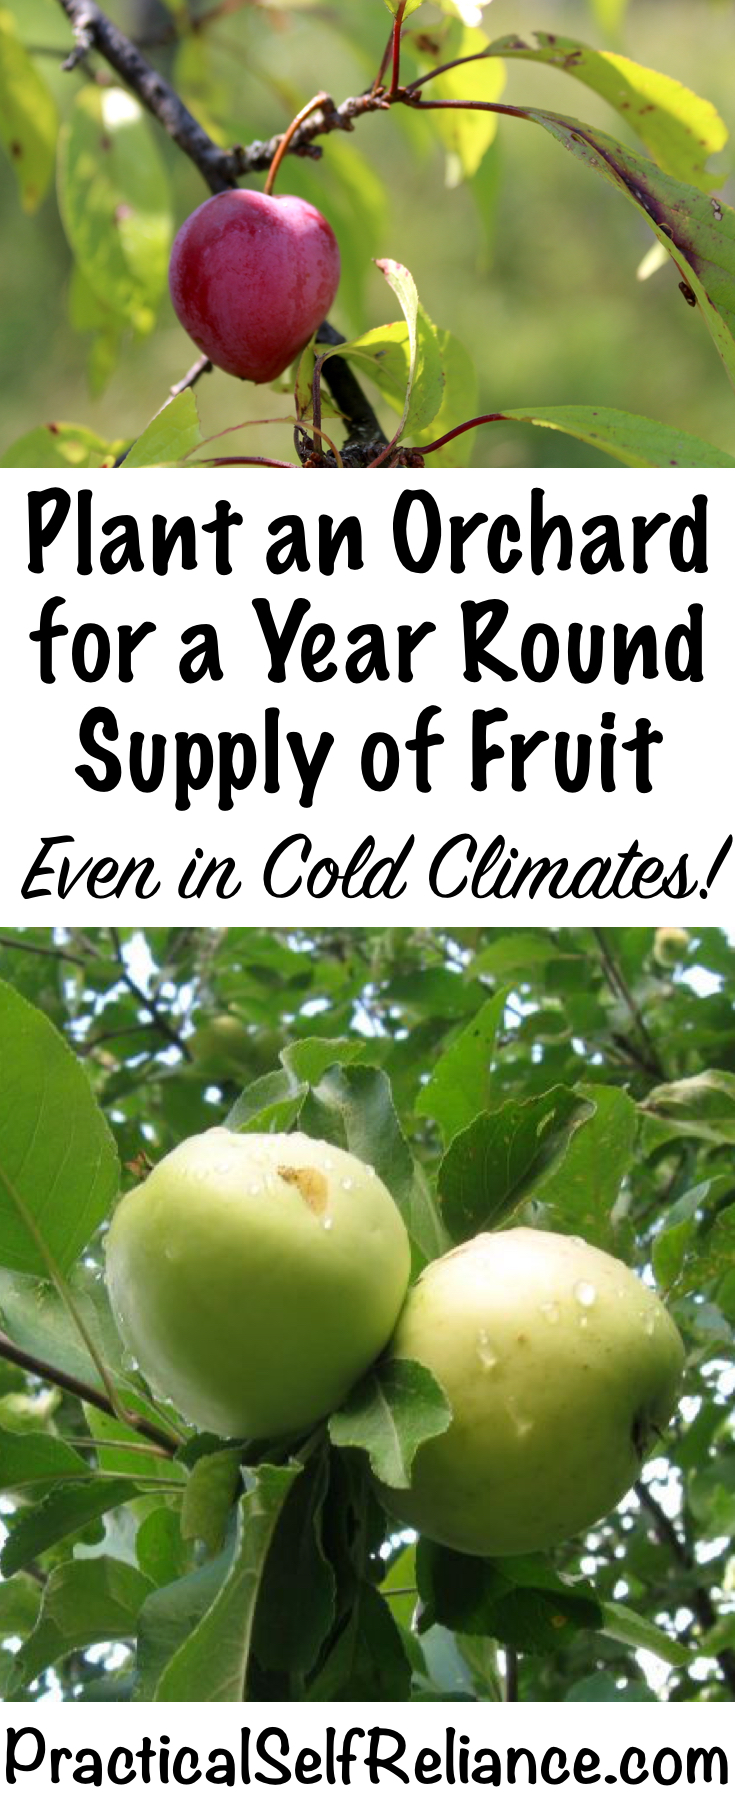 How to Plant an Orchard for a Year Round Supply of Fruit ~ Even in Cold Climates ~ Zone 4 Orchard #growingfruit #fruittrees #permaculture #howtogrow #orchard #homesteading #growingfood #trees #gardening #perennial #selfsufficiency #gardeningtips